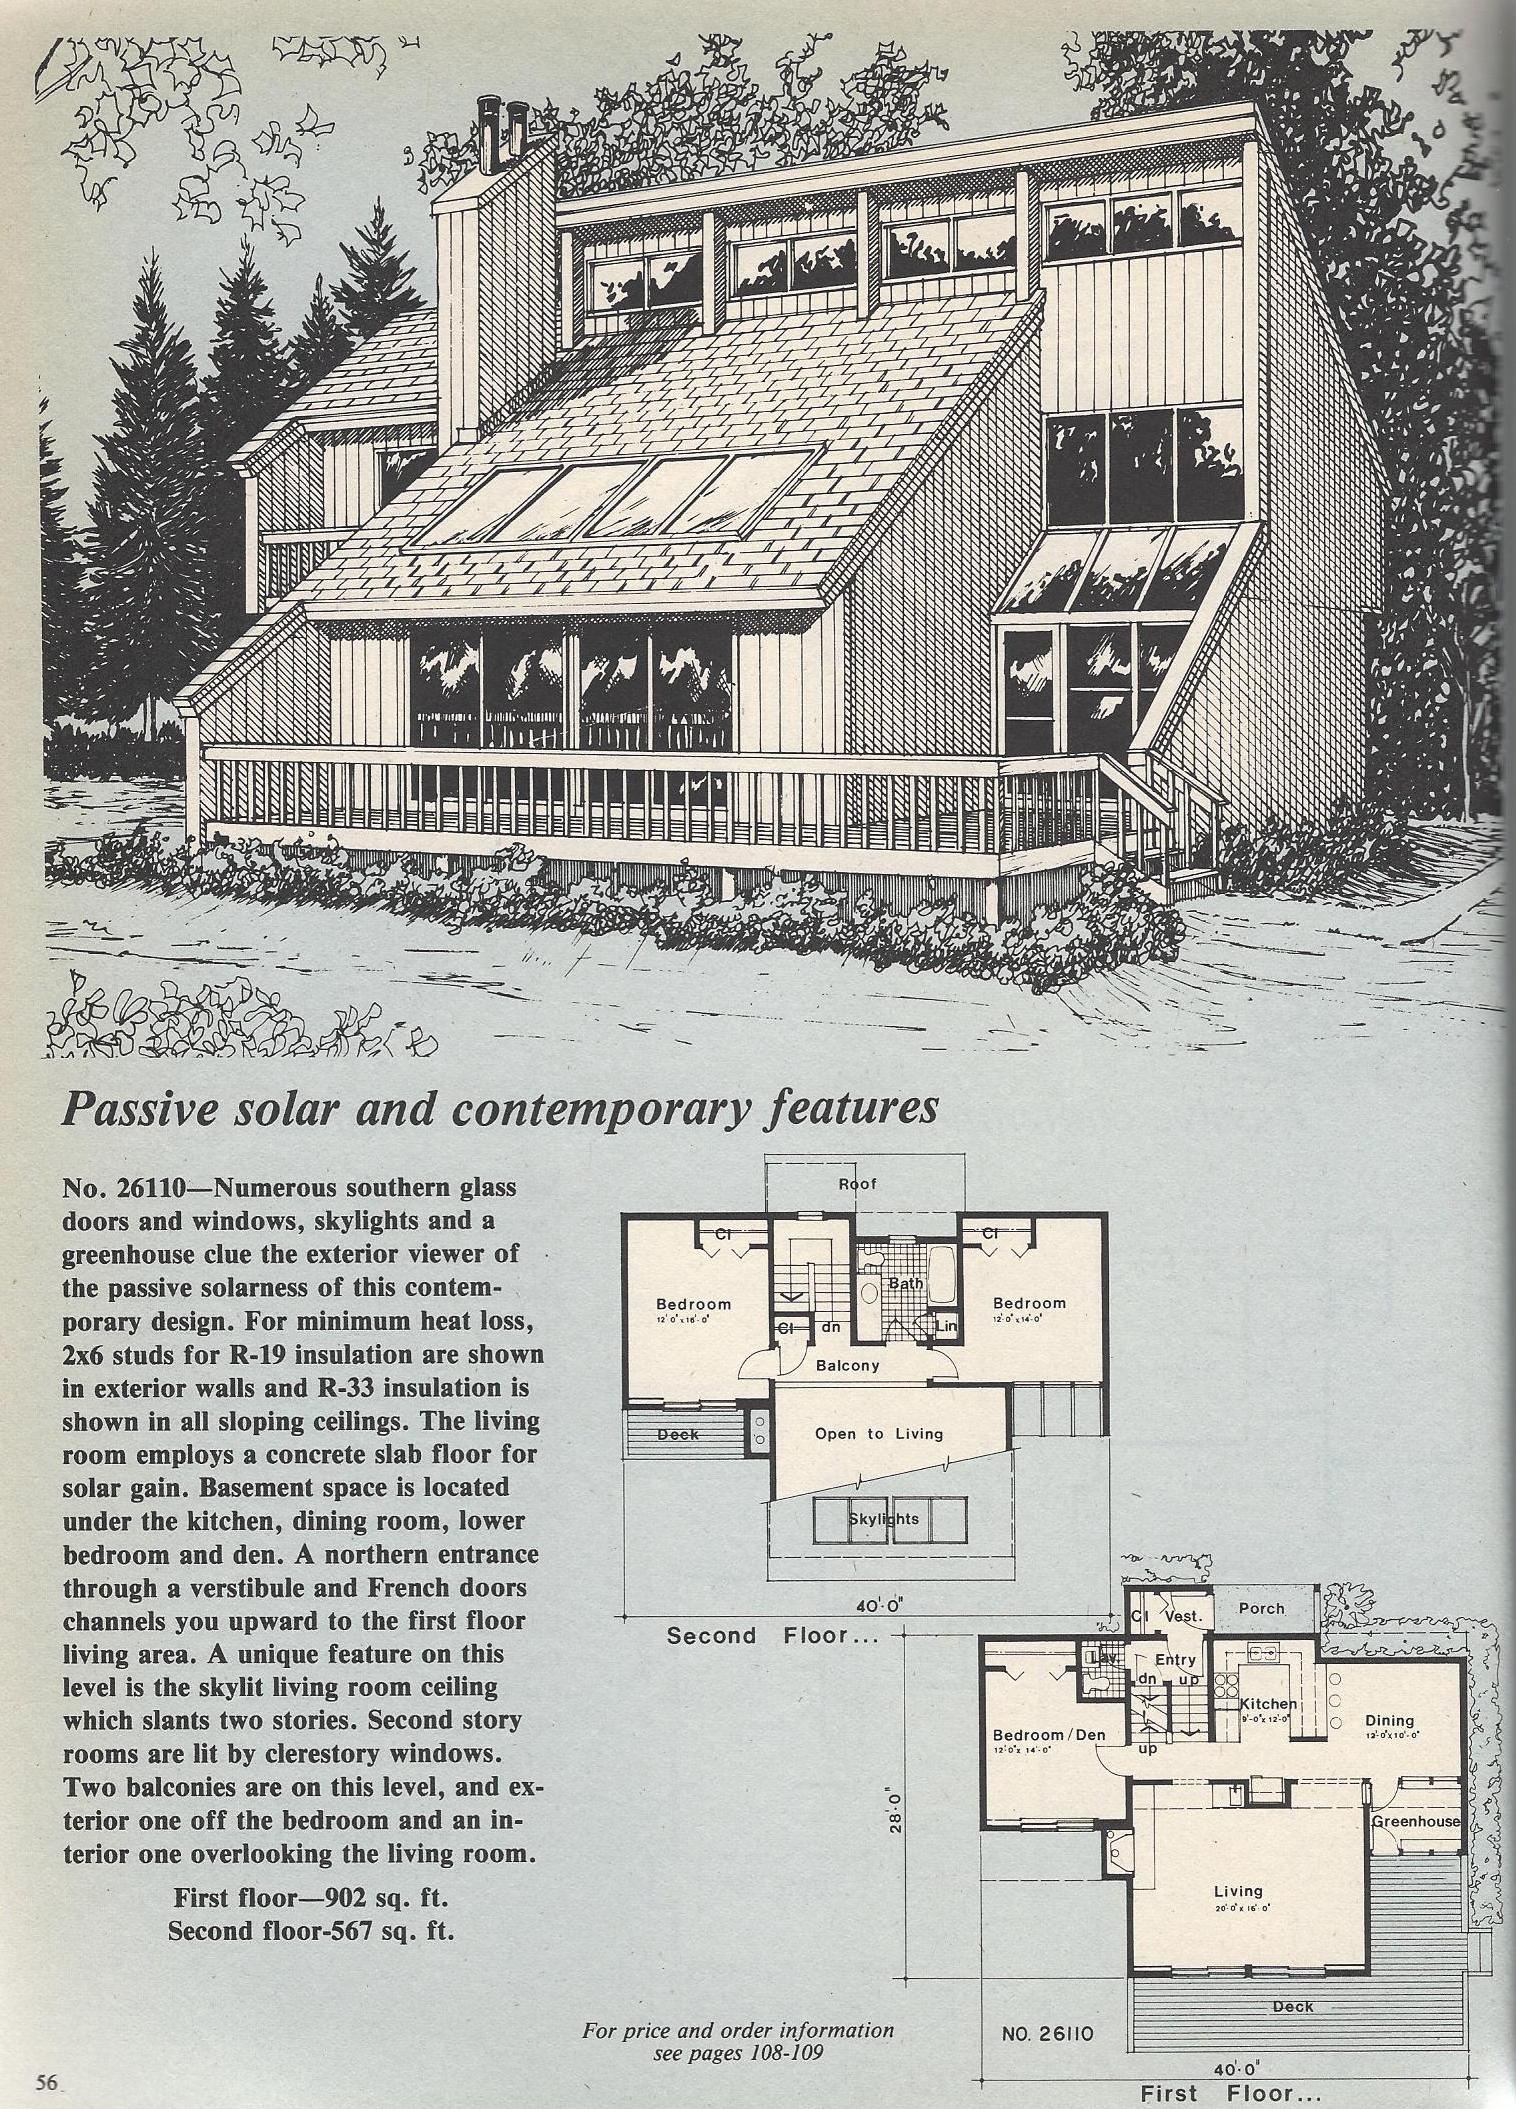 Contemporary passive solar antique alter ego for Passive solar home plans